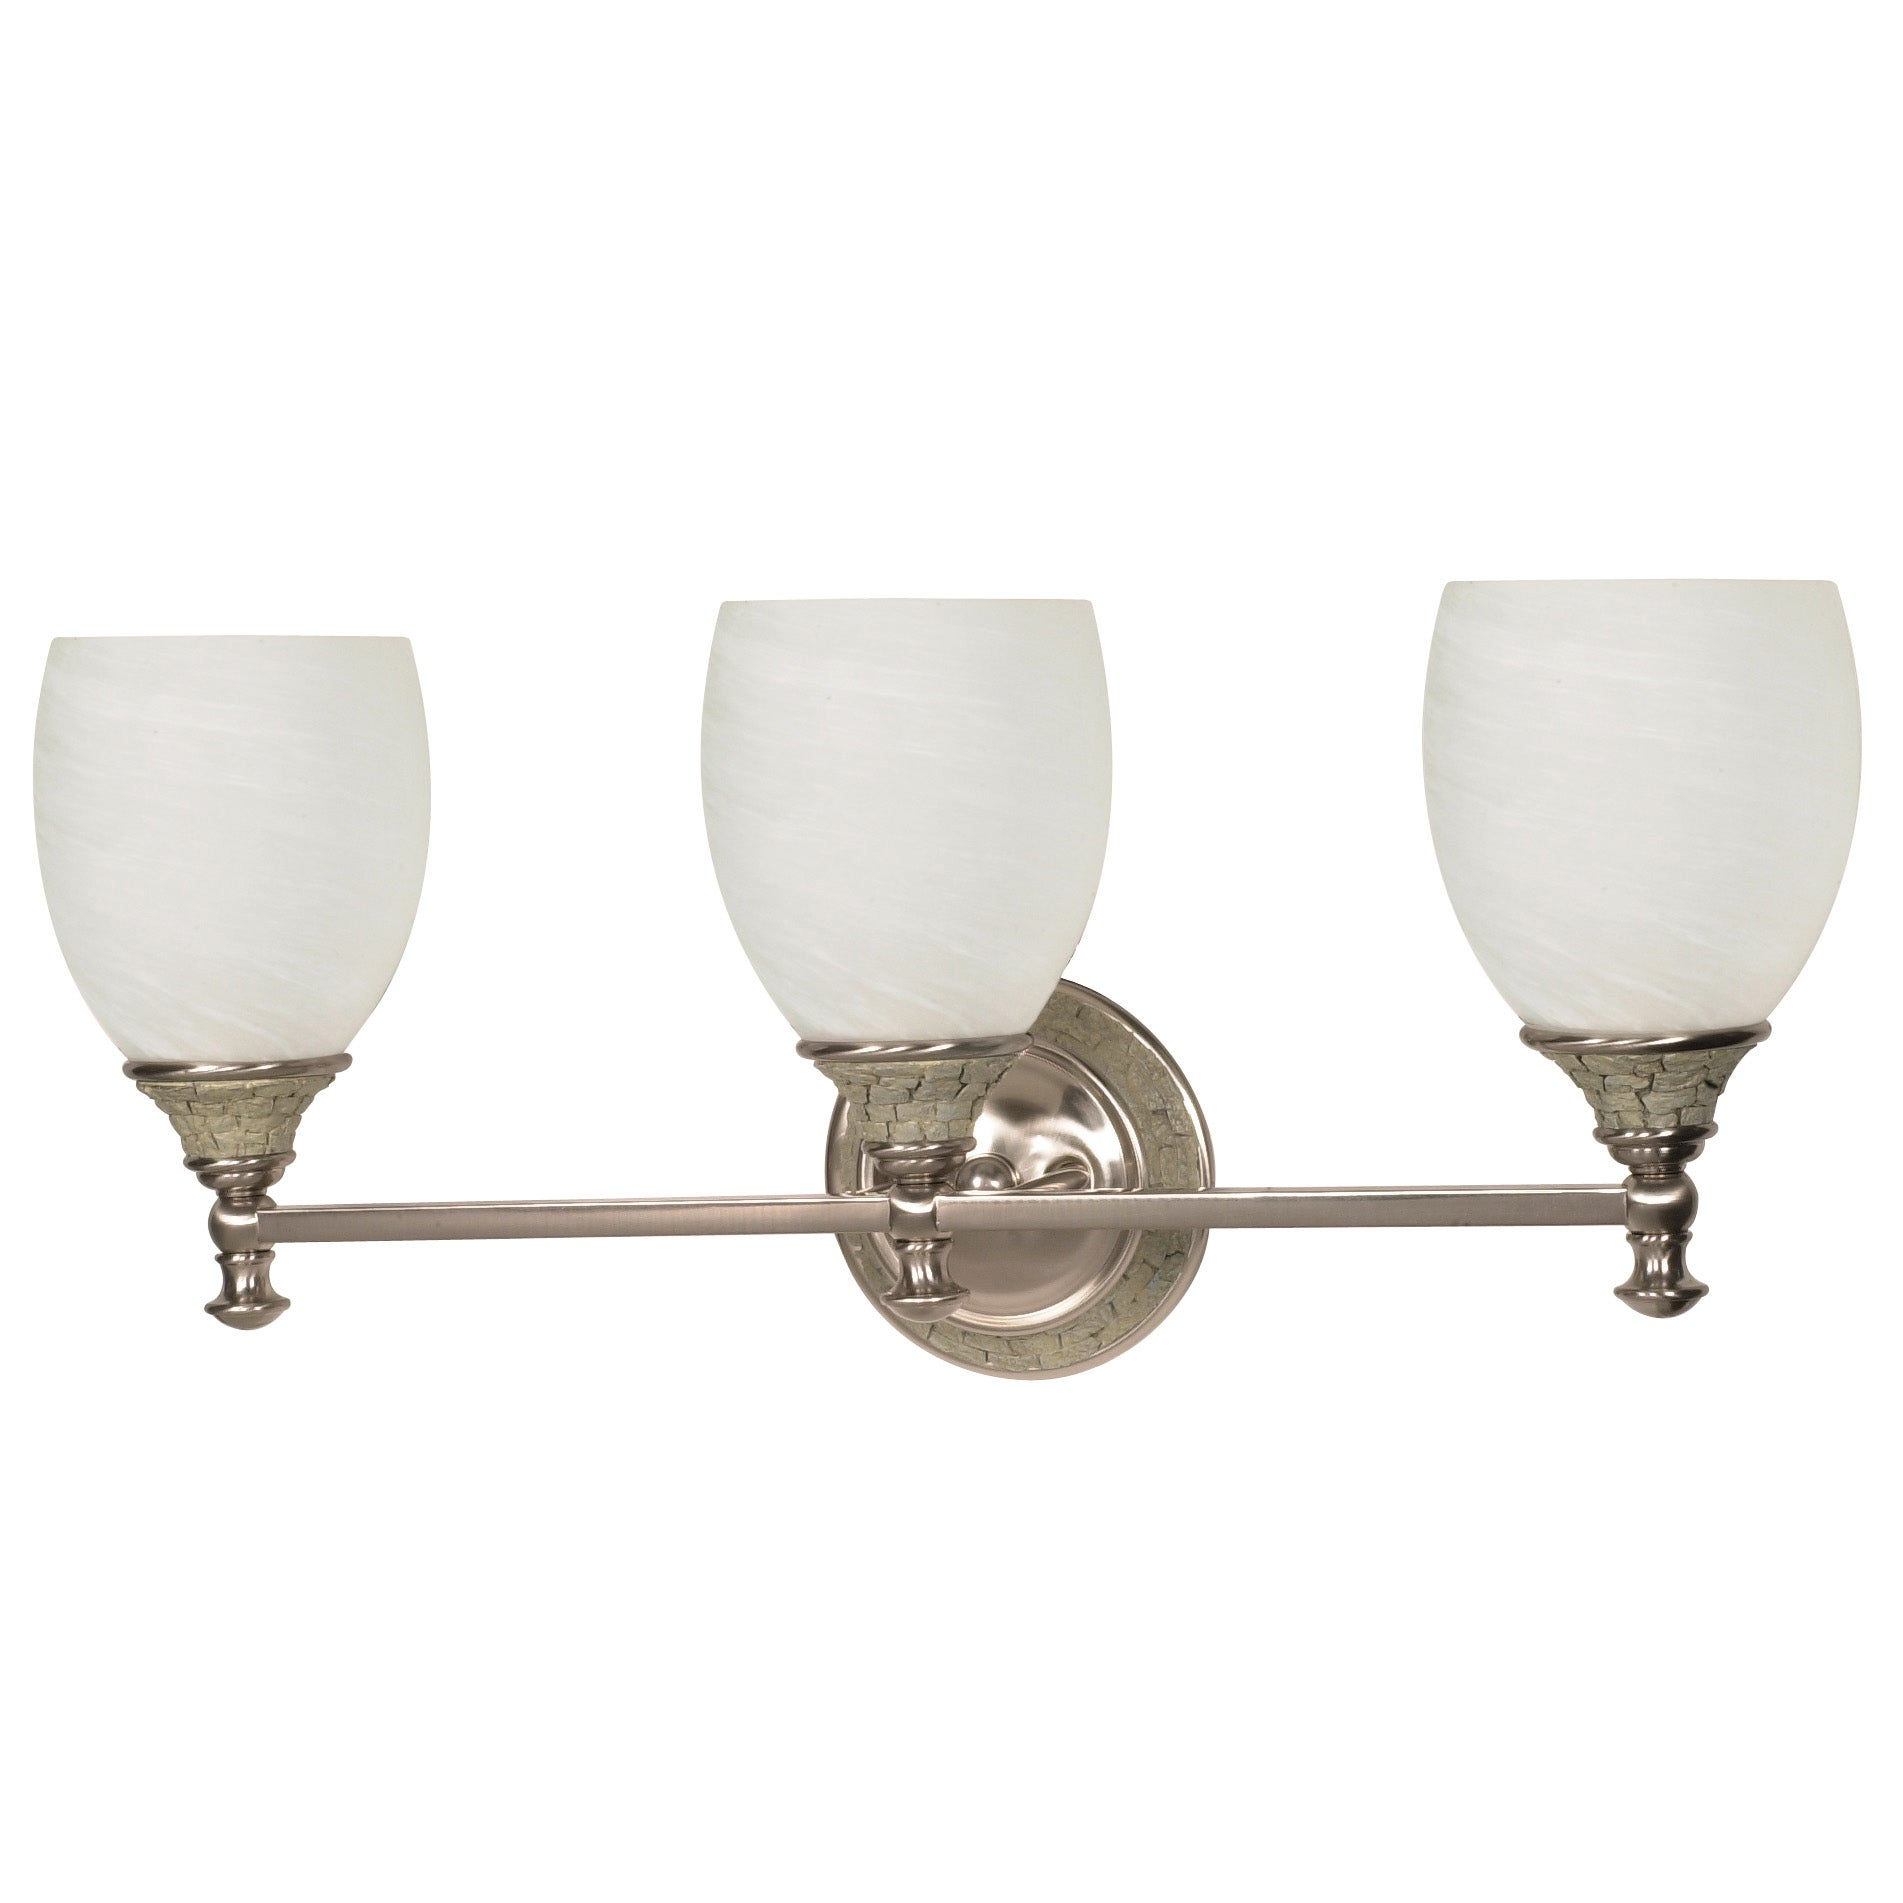 Rockport Milano 3 Light Brushed Nickel With Alabaster Swirl Glass Vanity